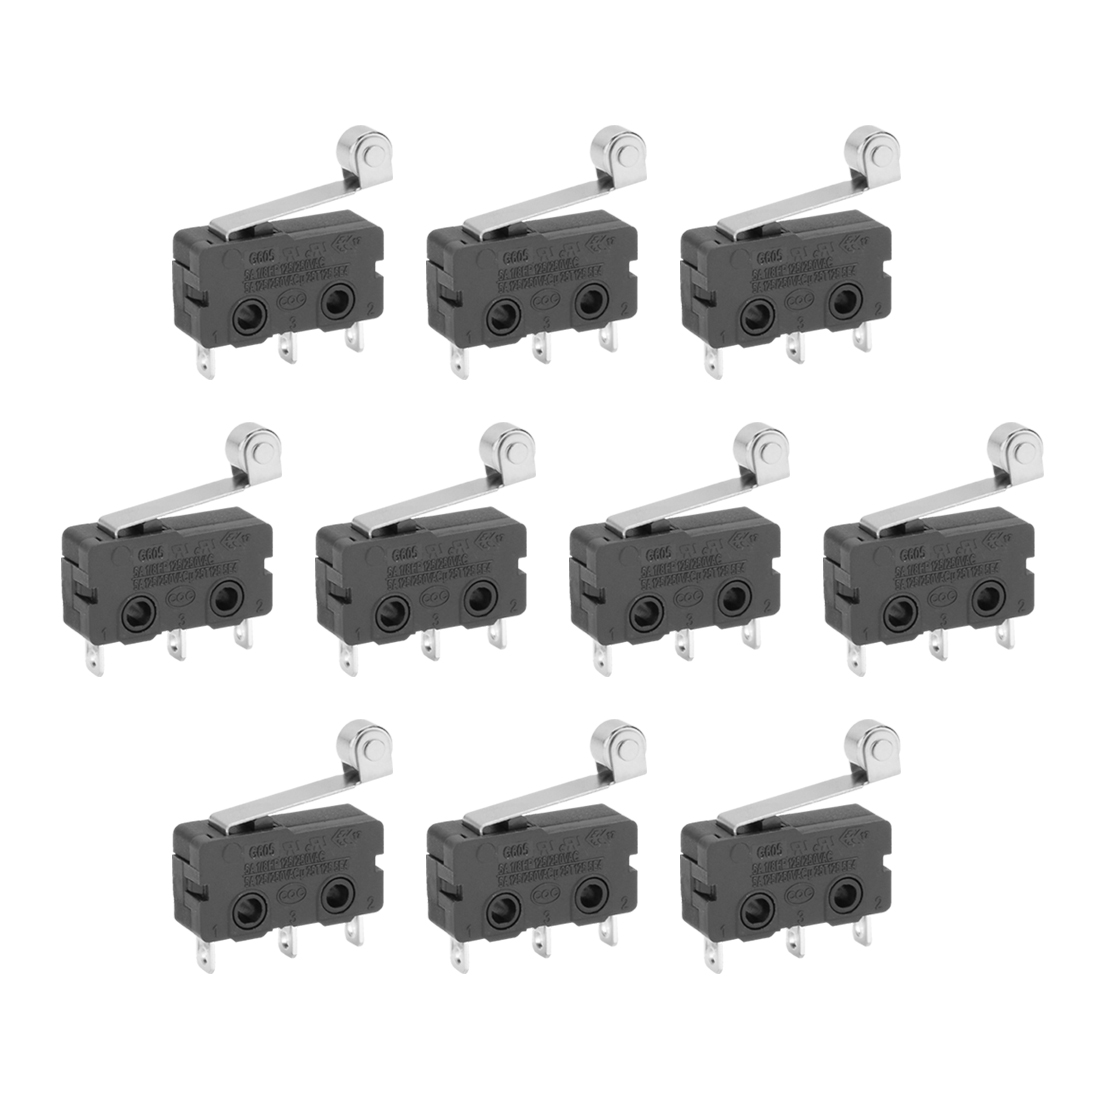 10 Pcs KW12 Micro Limit Switch Roller Lever Subminiature SPDT Snap Action LOT